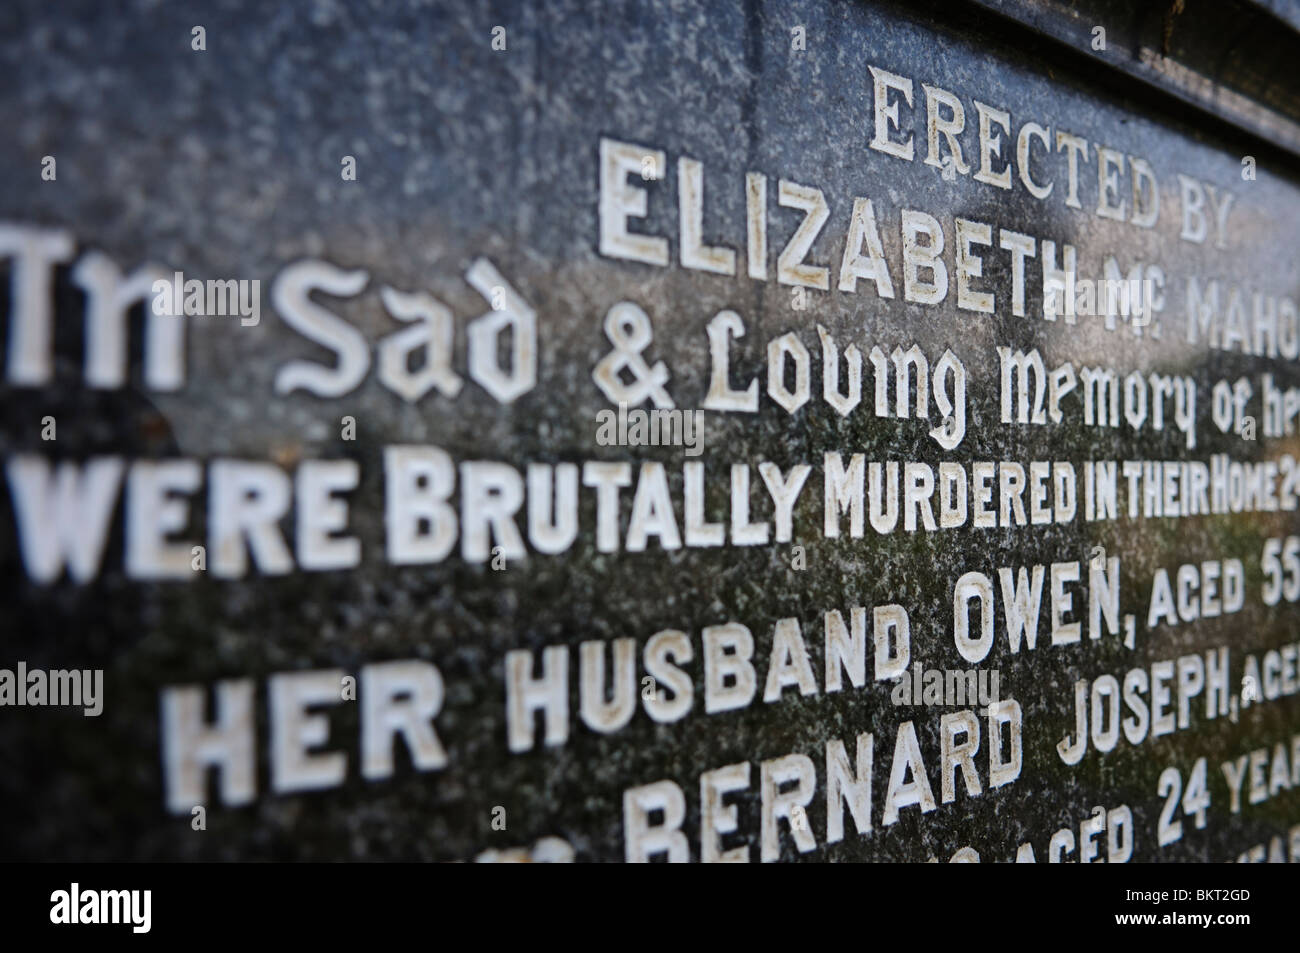 Gravestone inscription with the words 'Brutally Murdered' - Stock Image